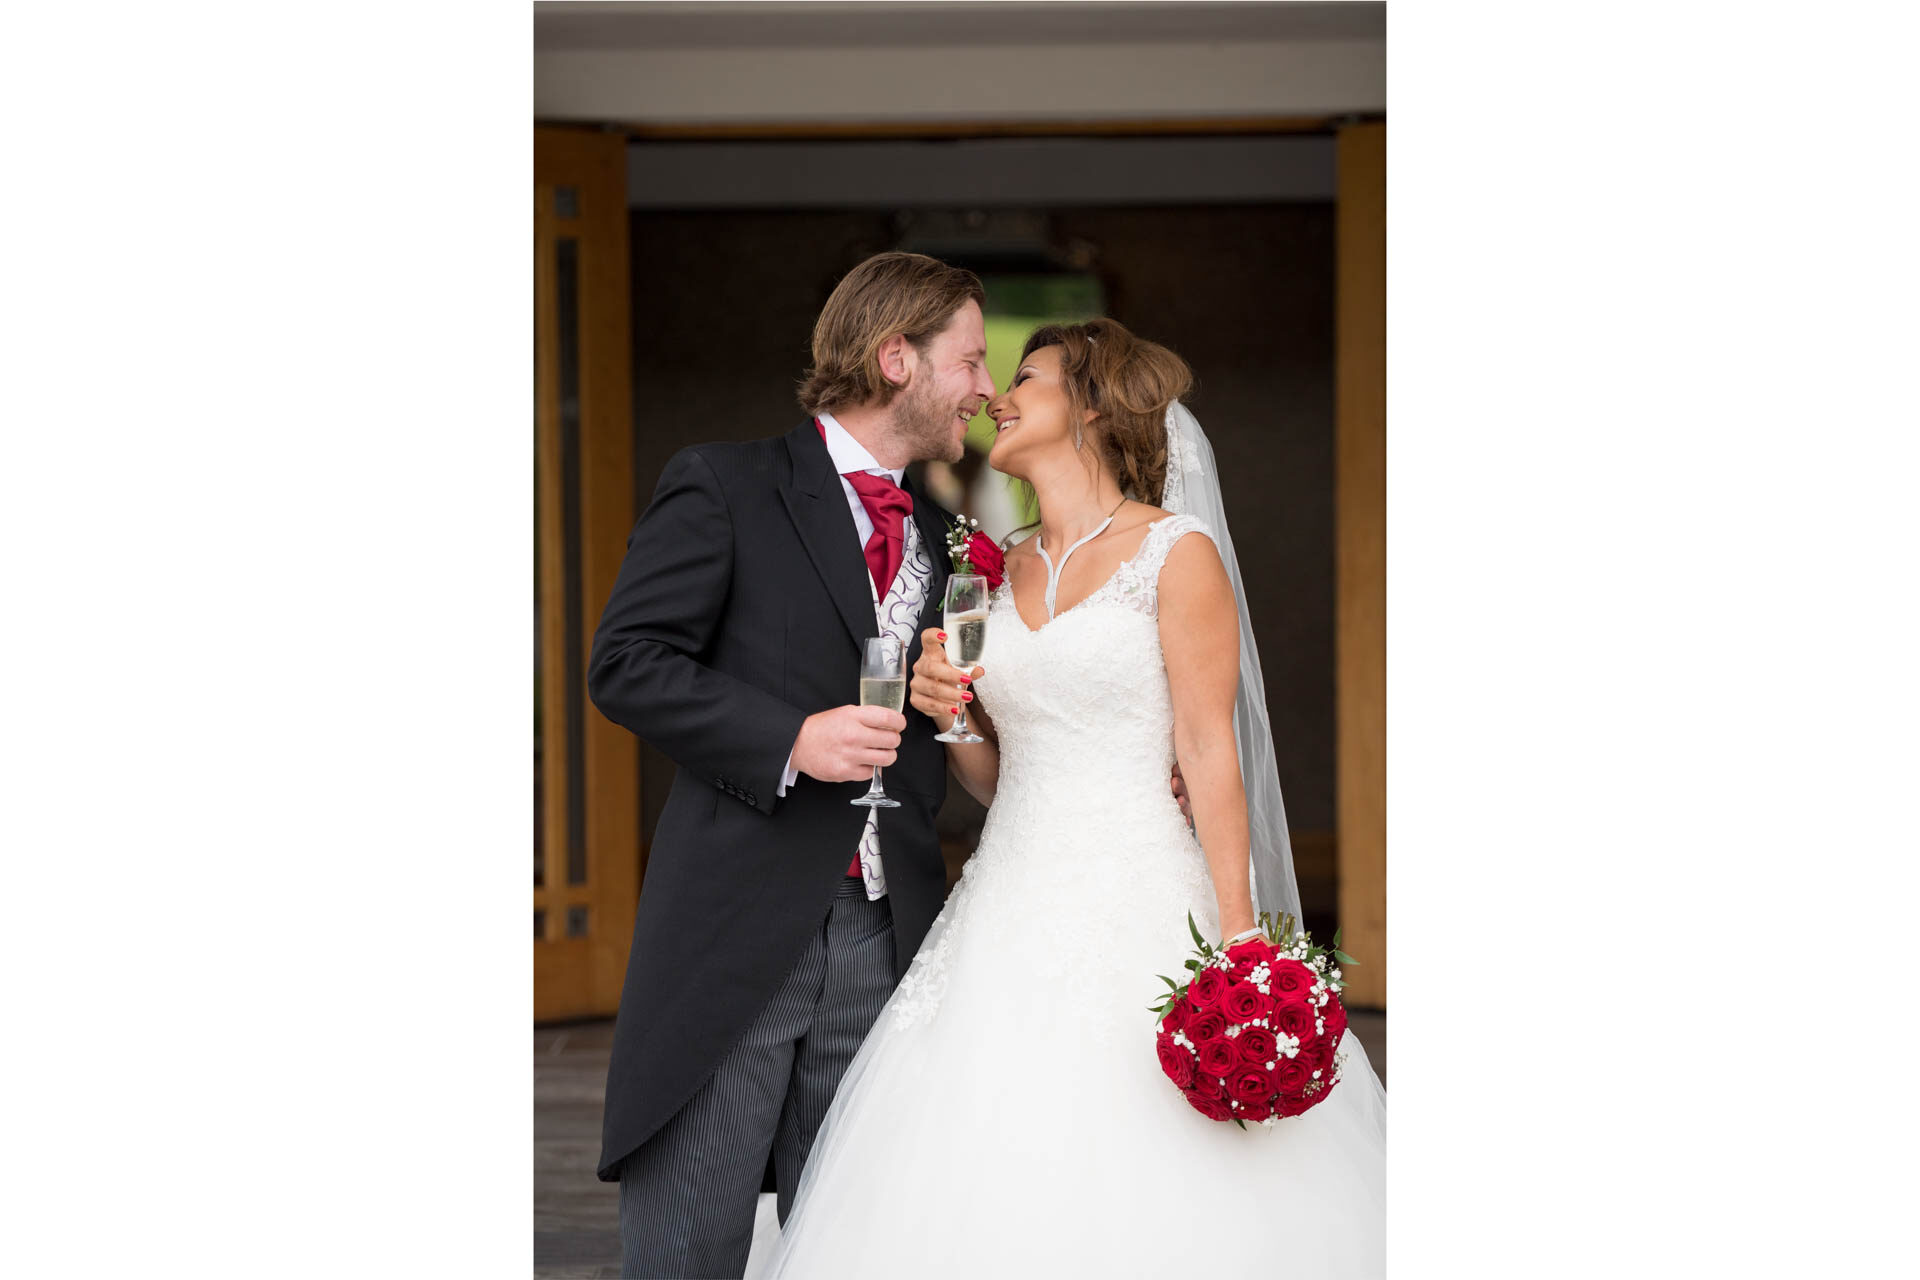 Picture of Deniz and Stevie at Killyhevlin Hotel, Enniskillen on their wedding day captured by Fermanagh, Tyrone and Northern Ireland Wedding Photographer, Trevor Lucy Photography